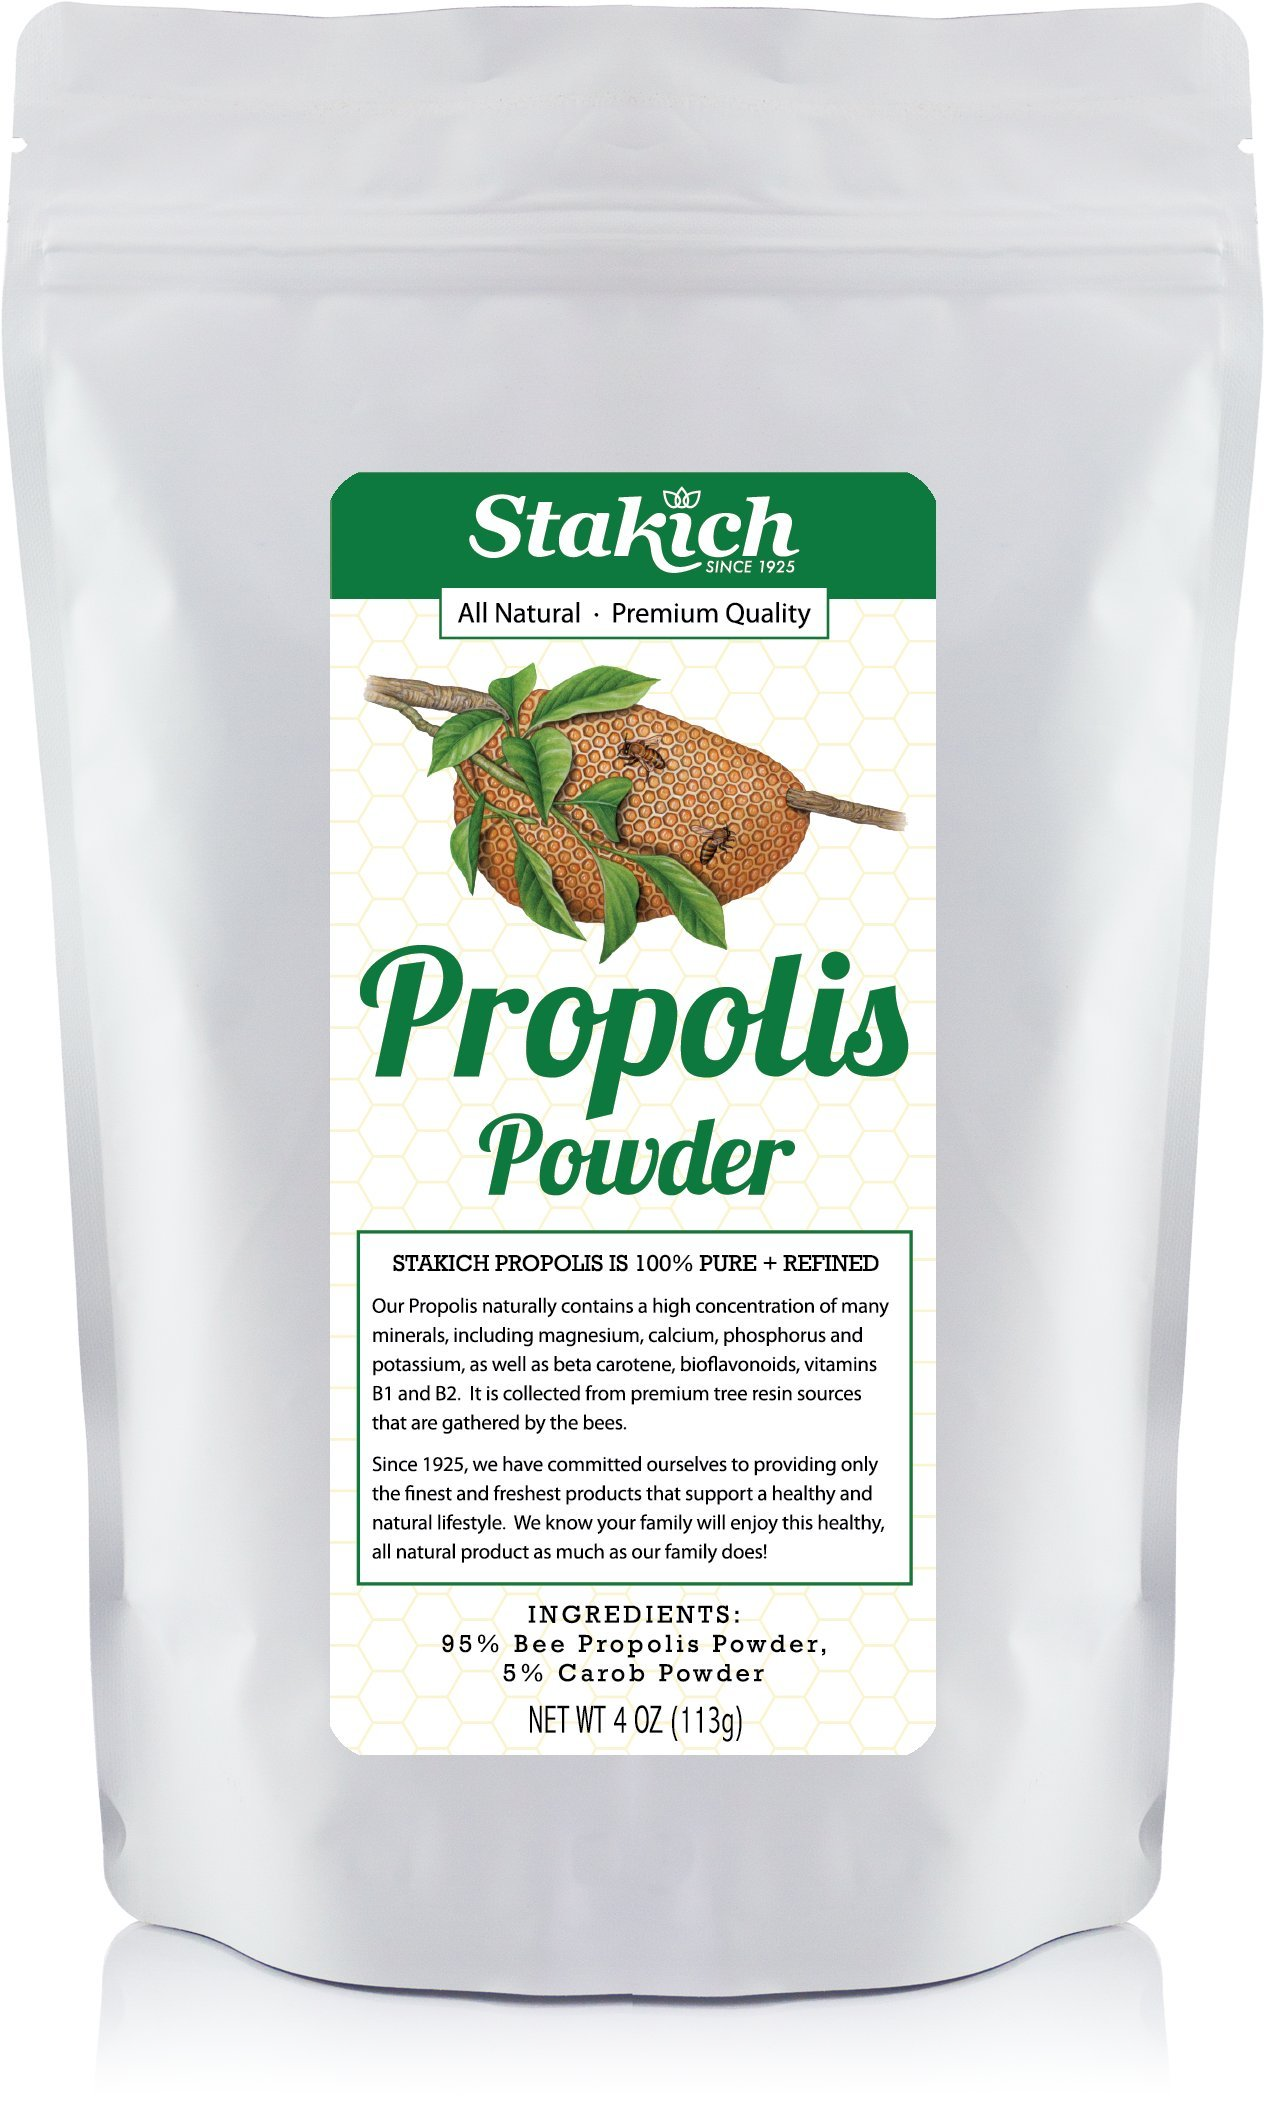 Stakich BEE PROPOLIS POWDER w/ 5% CAROB - 100% Pure, All Natural, Top Quality - 4 oz